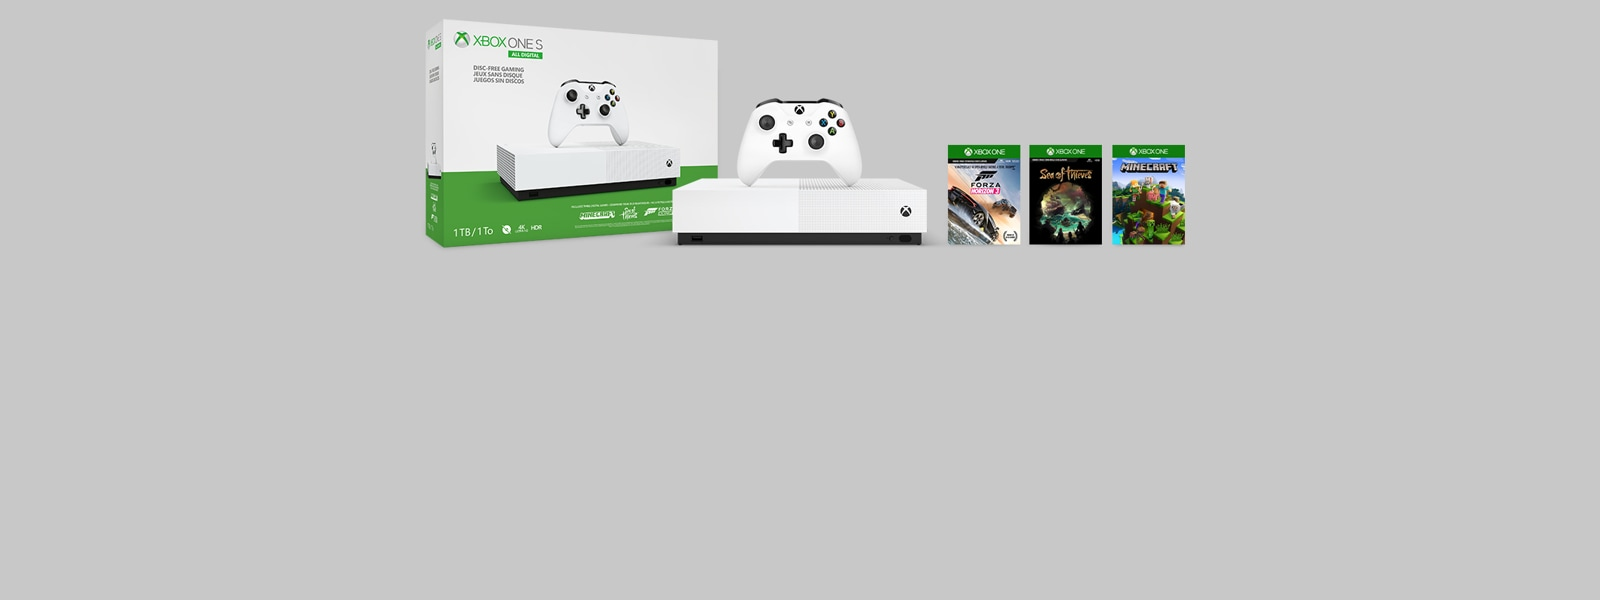 New Xbox One S All-Digital Edition-Konsole mit vorinstallierten Spielen: Forza Horizon 3, Sea of Thieves, Minecraft